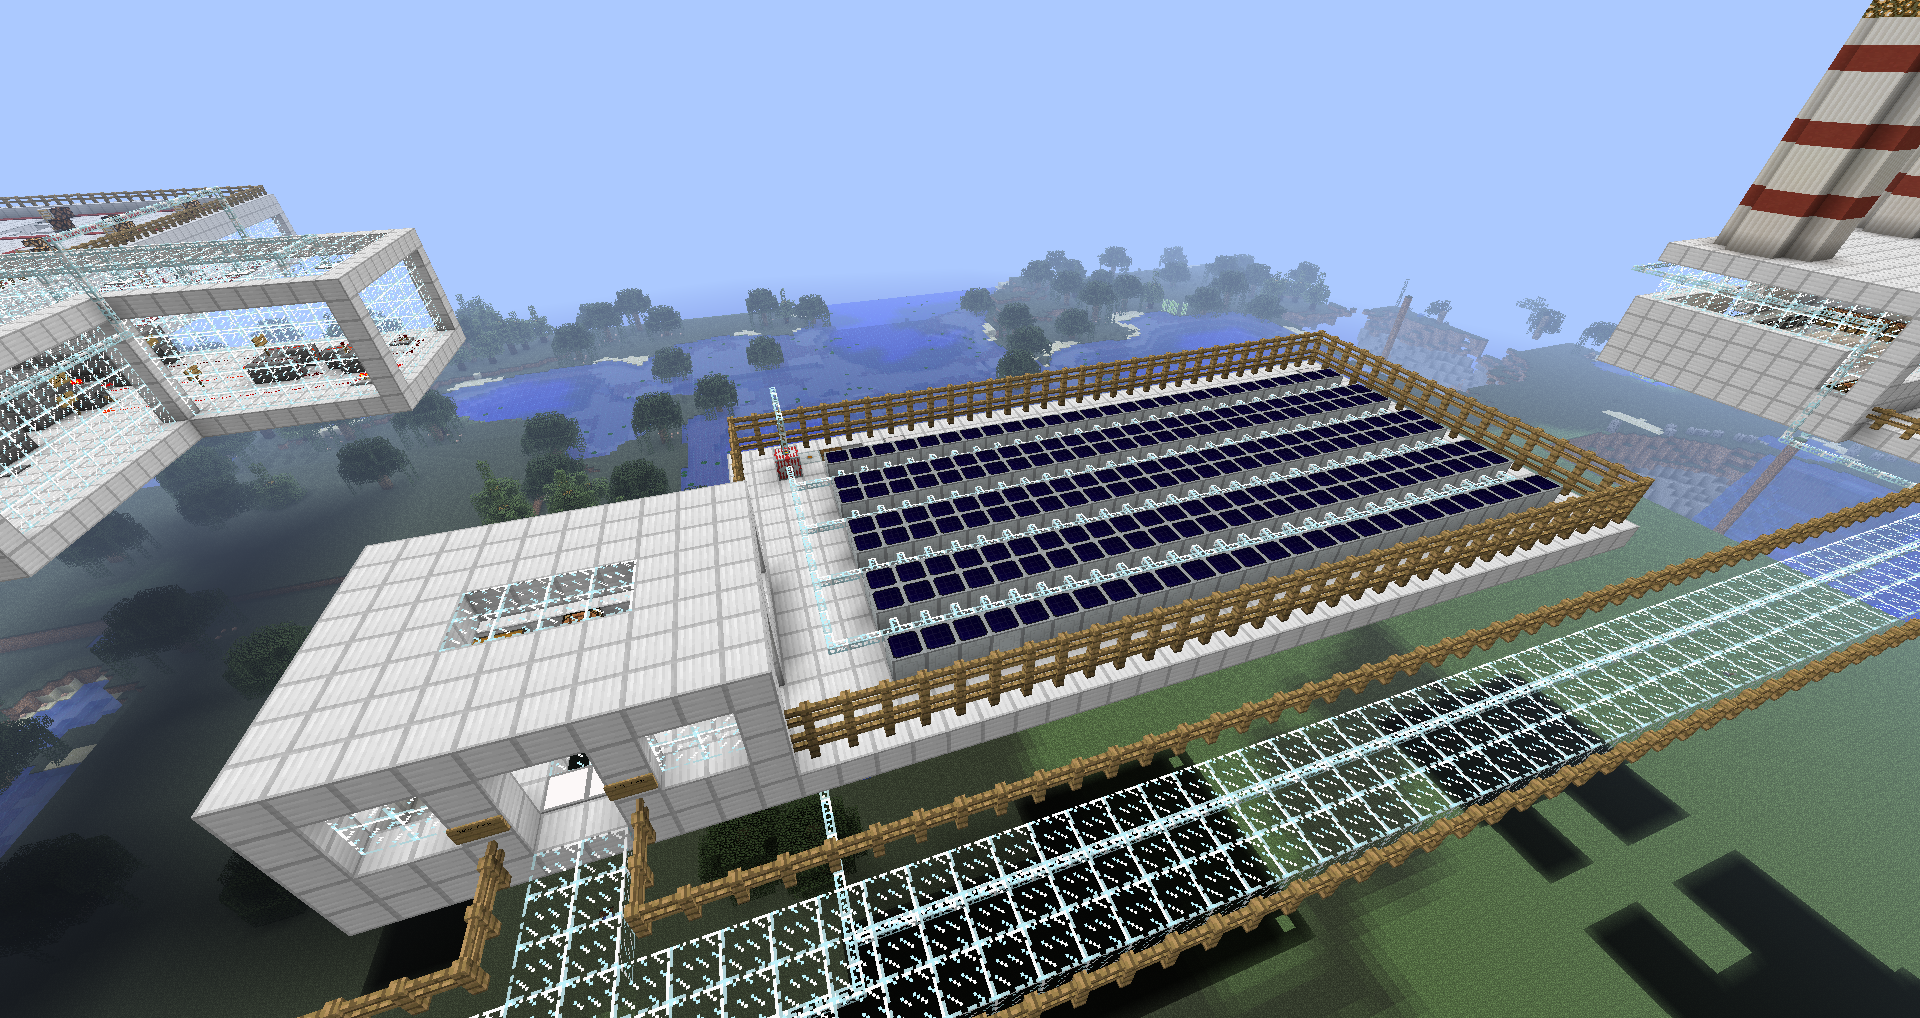 Overview of the solar plant showing several rows of solar cells feeding into the building.